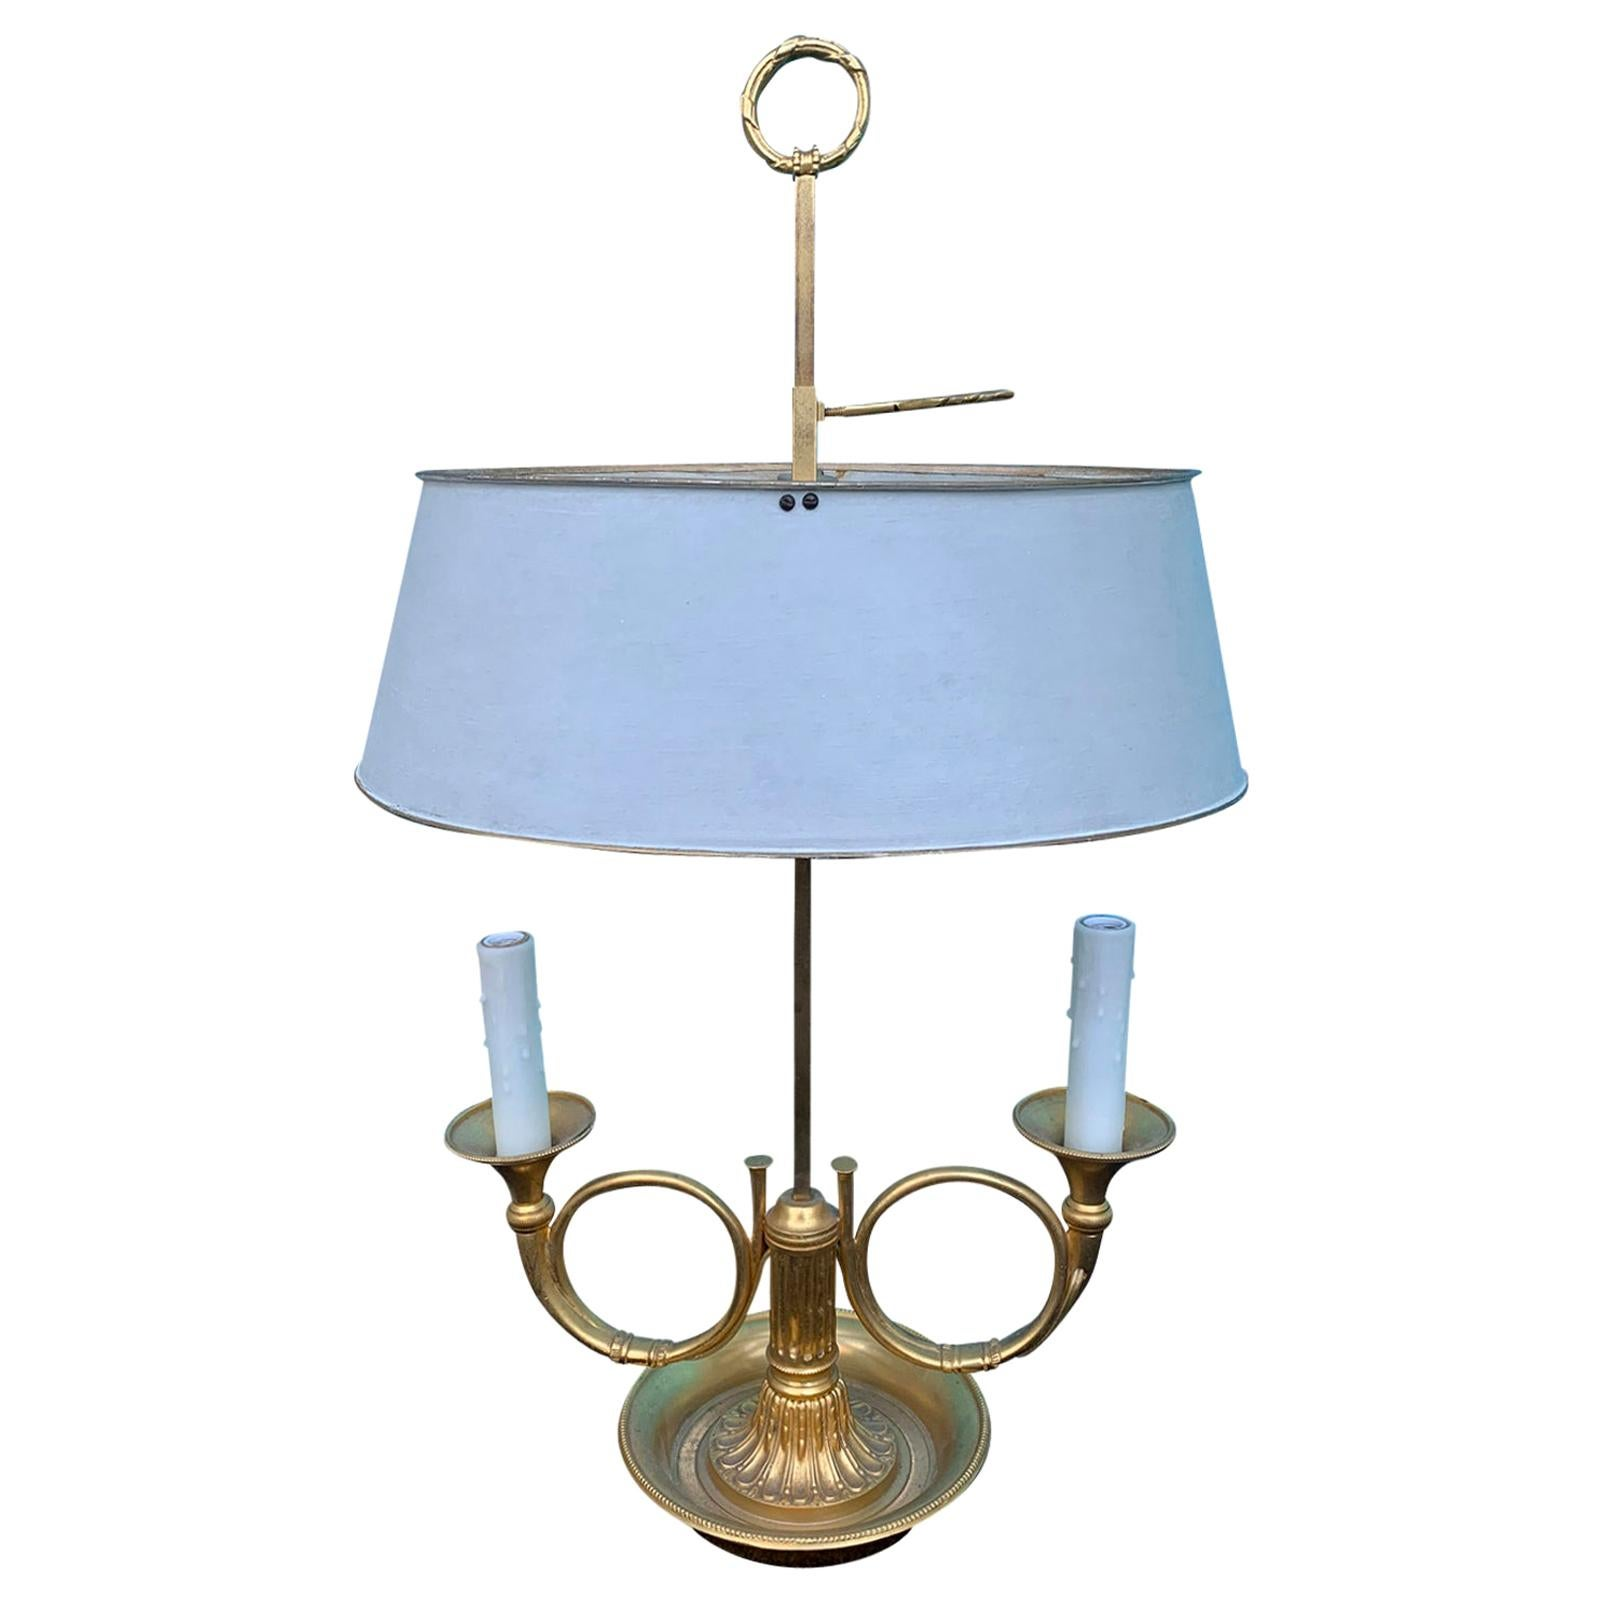 20th Century Bronze Two-Arm Bouillotte Lamp, French Horns, Painted Tole Shade